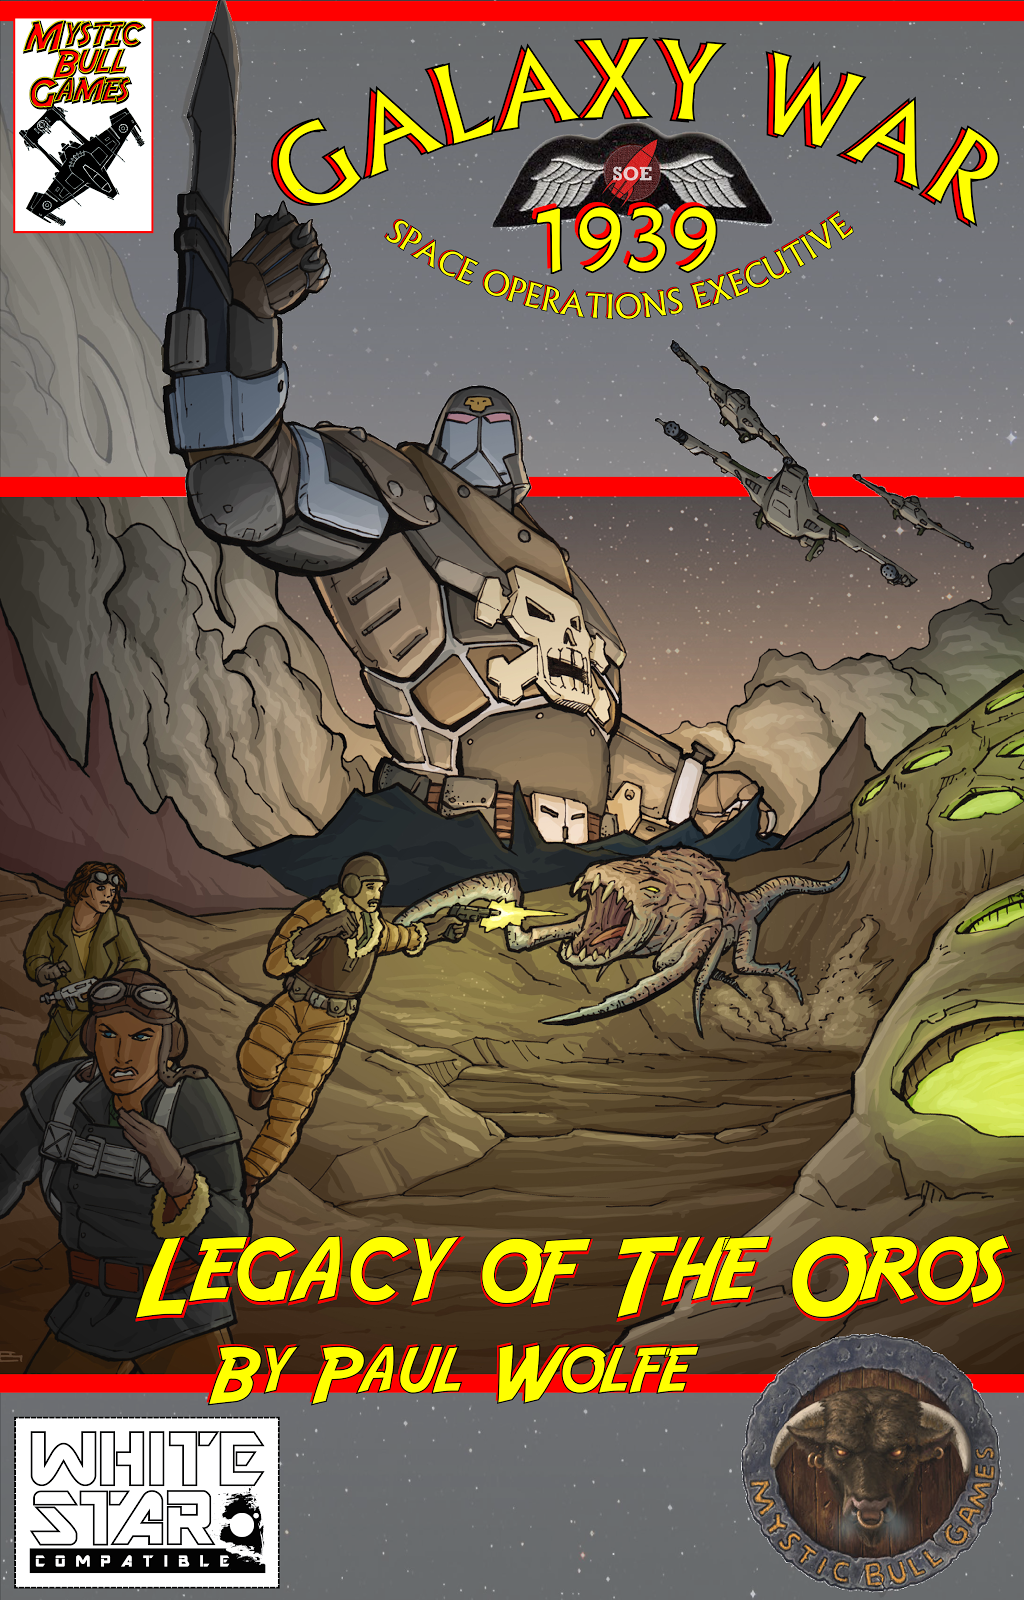 Galaxy War 1939: Legacy of Oros